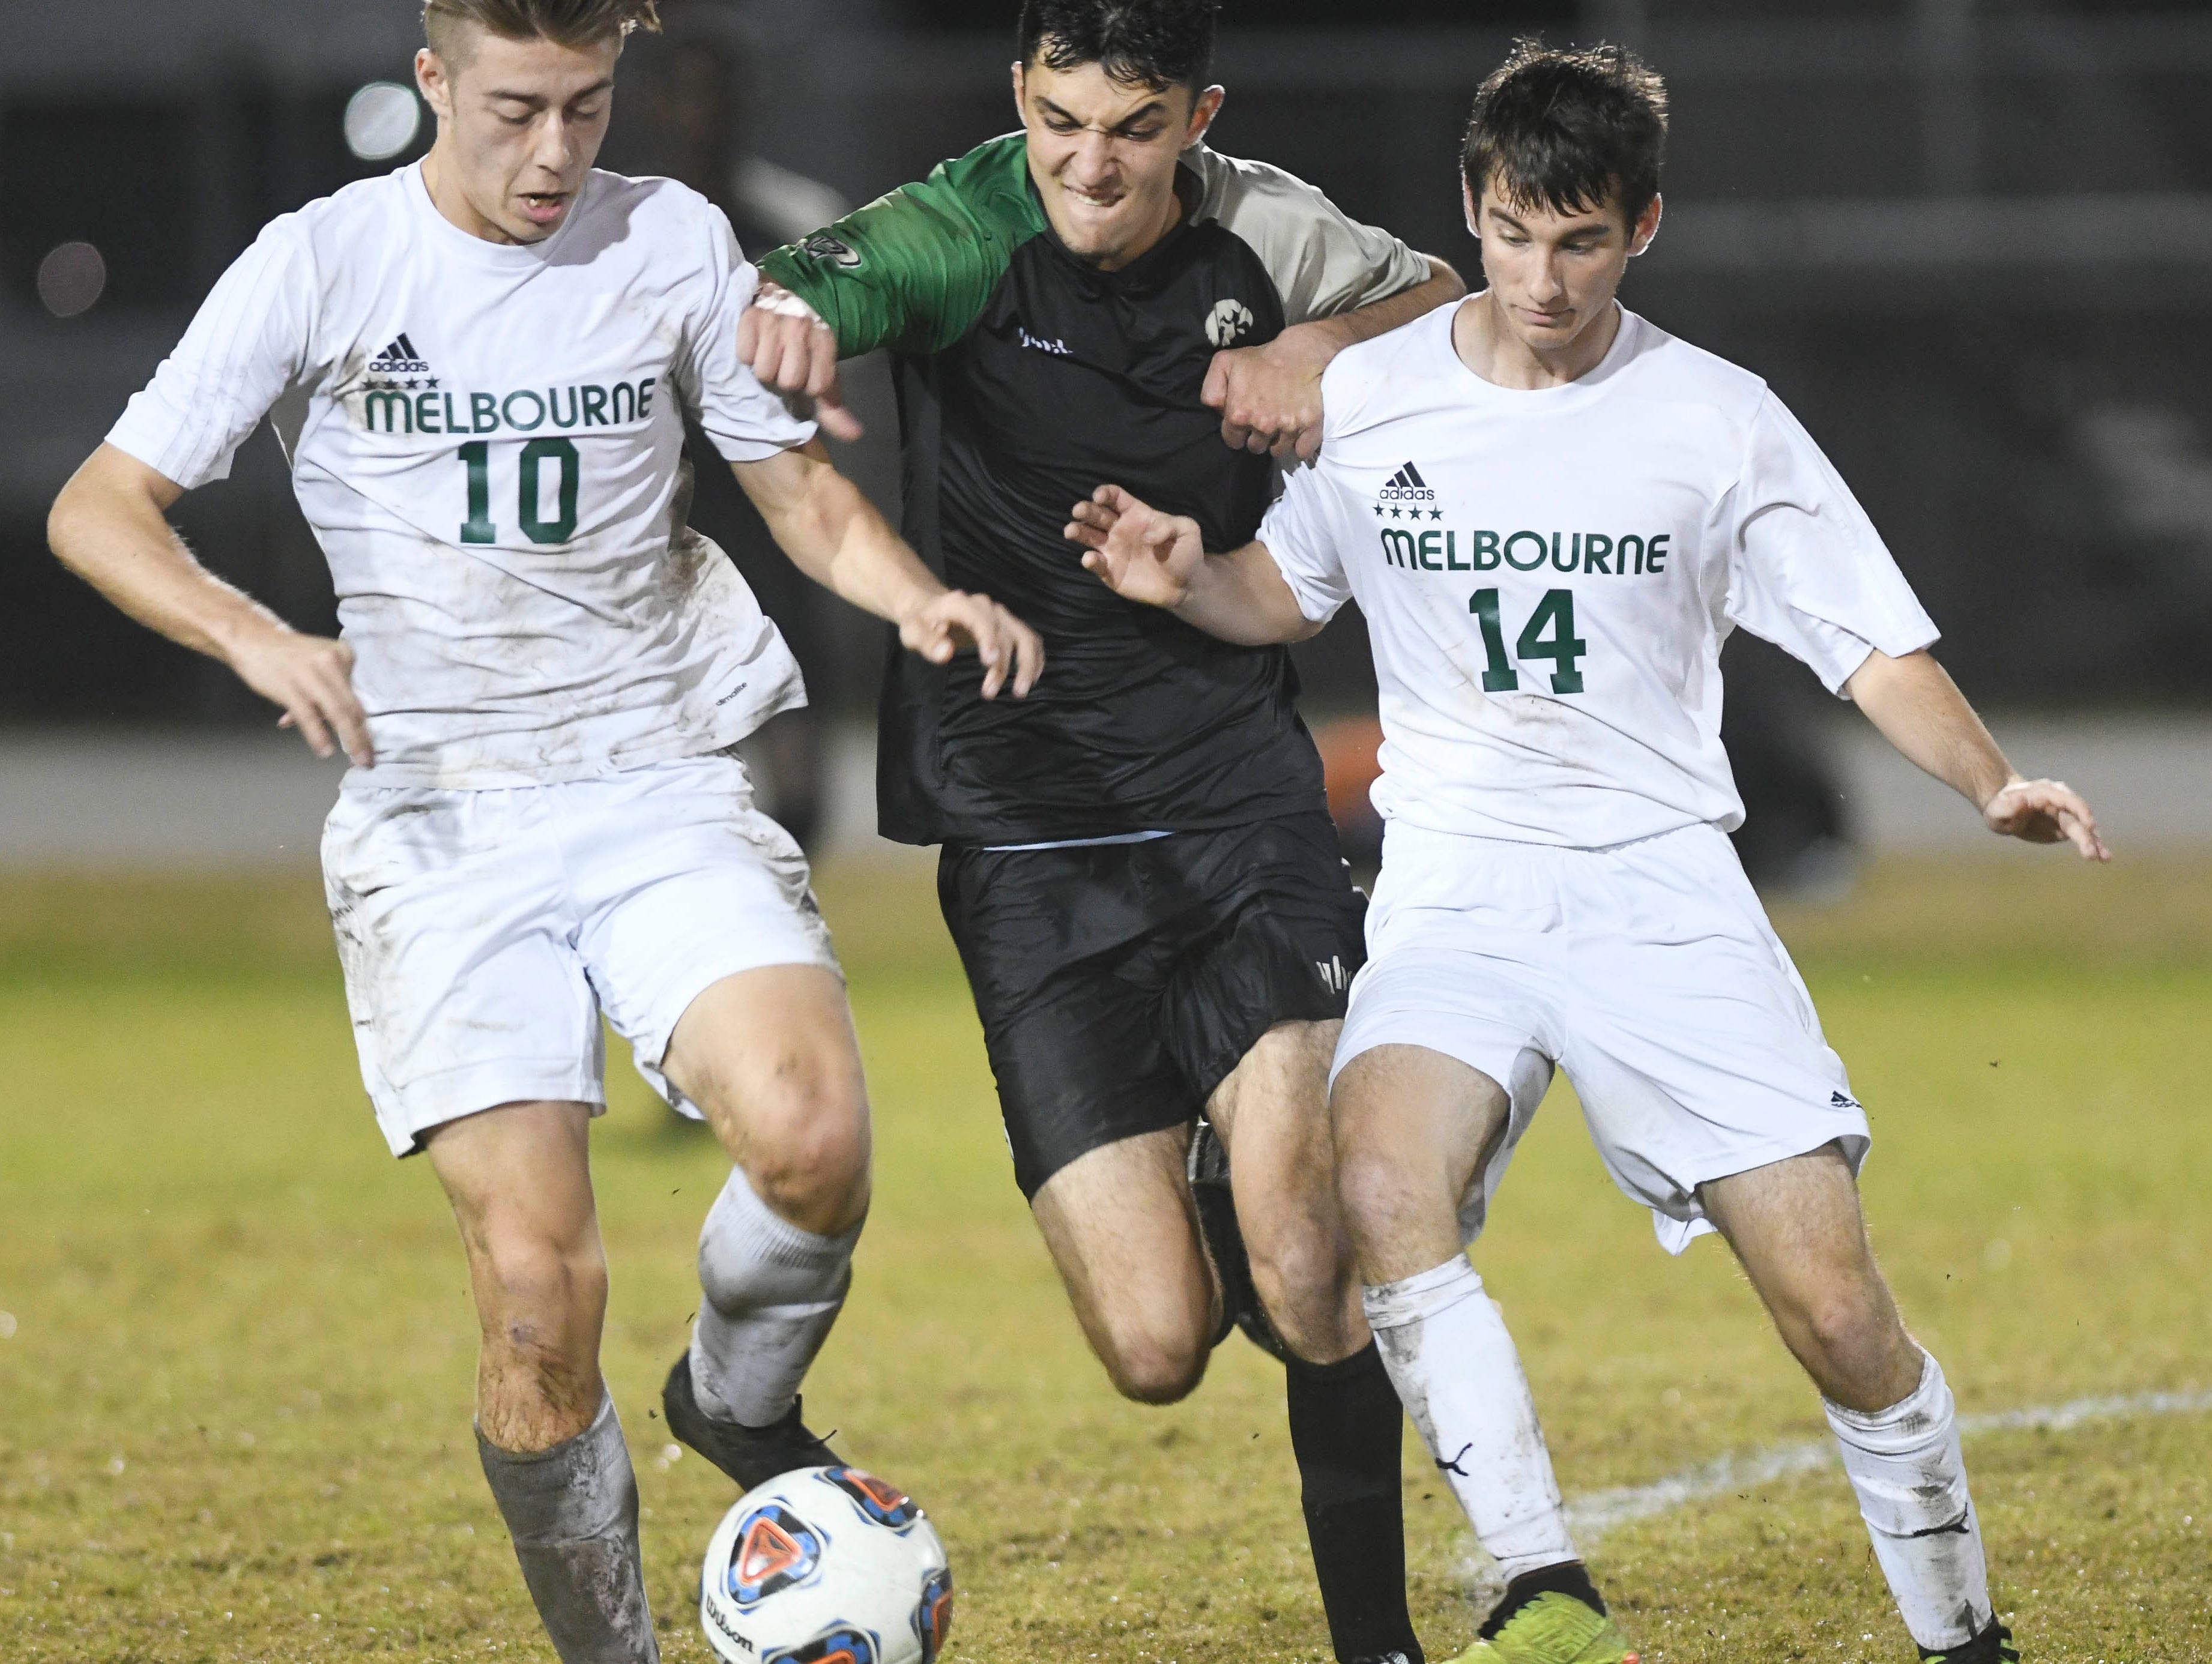 Aden O'Hara of Melbourne (10), Kia Mohajeri of VIera and Dylan Barakat of Melbourne fight for the ball during Friday's game at Viera High.